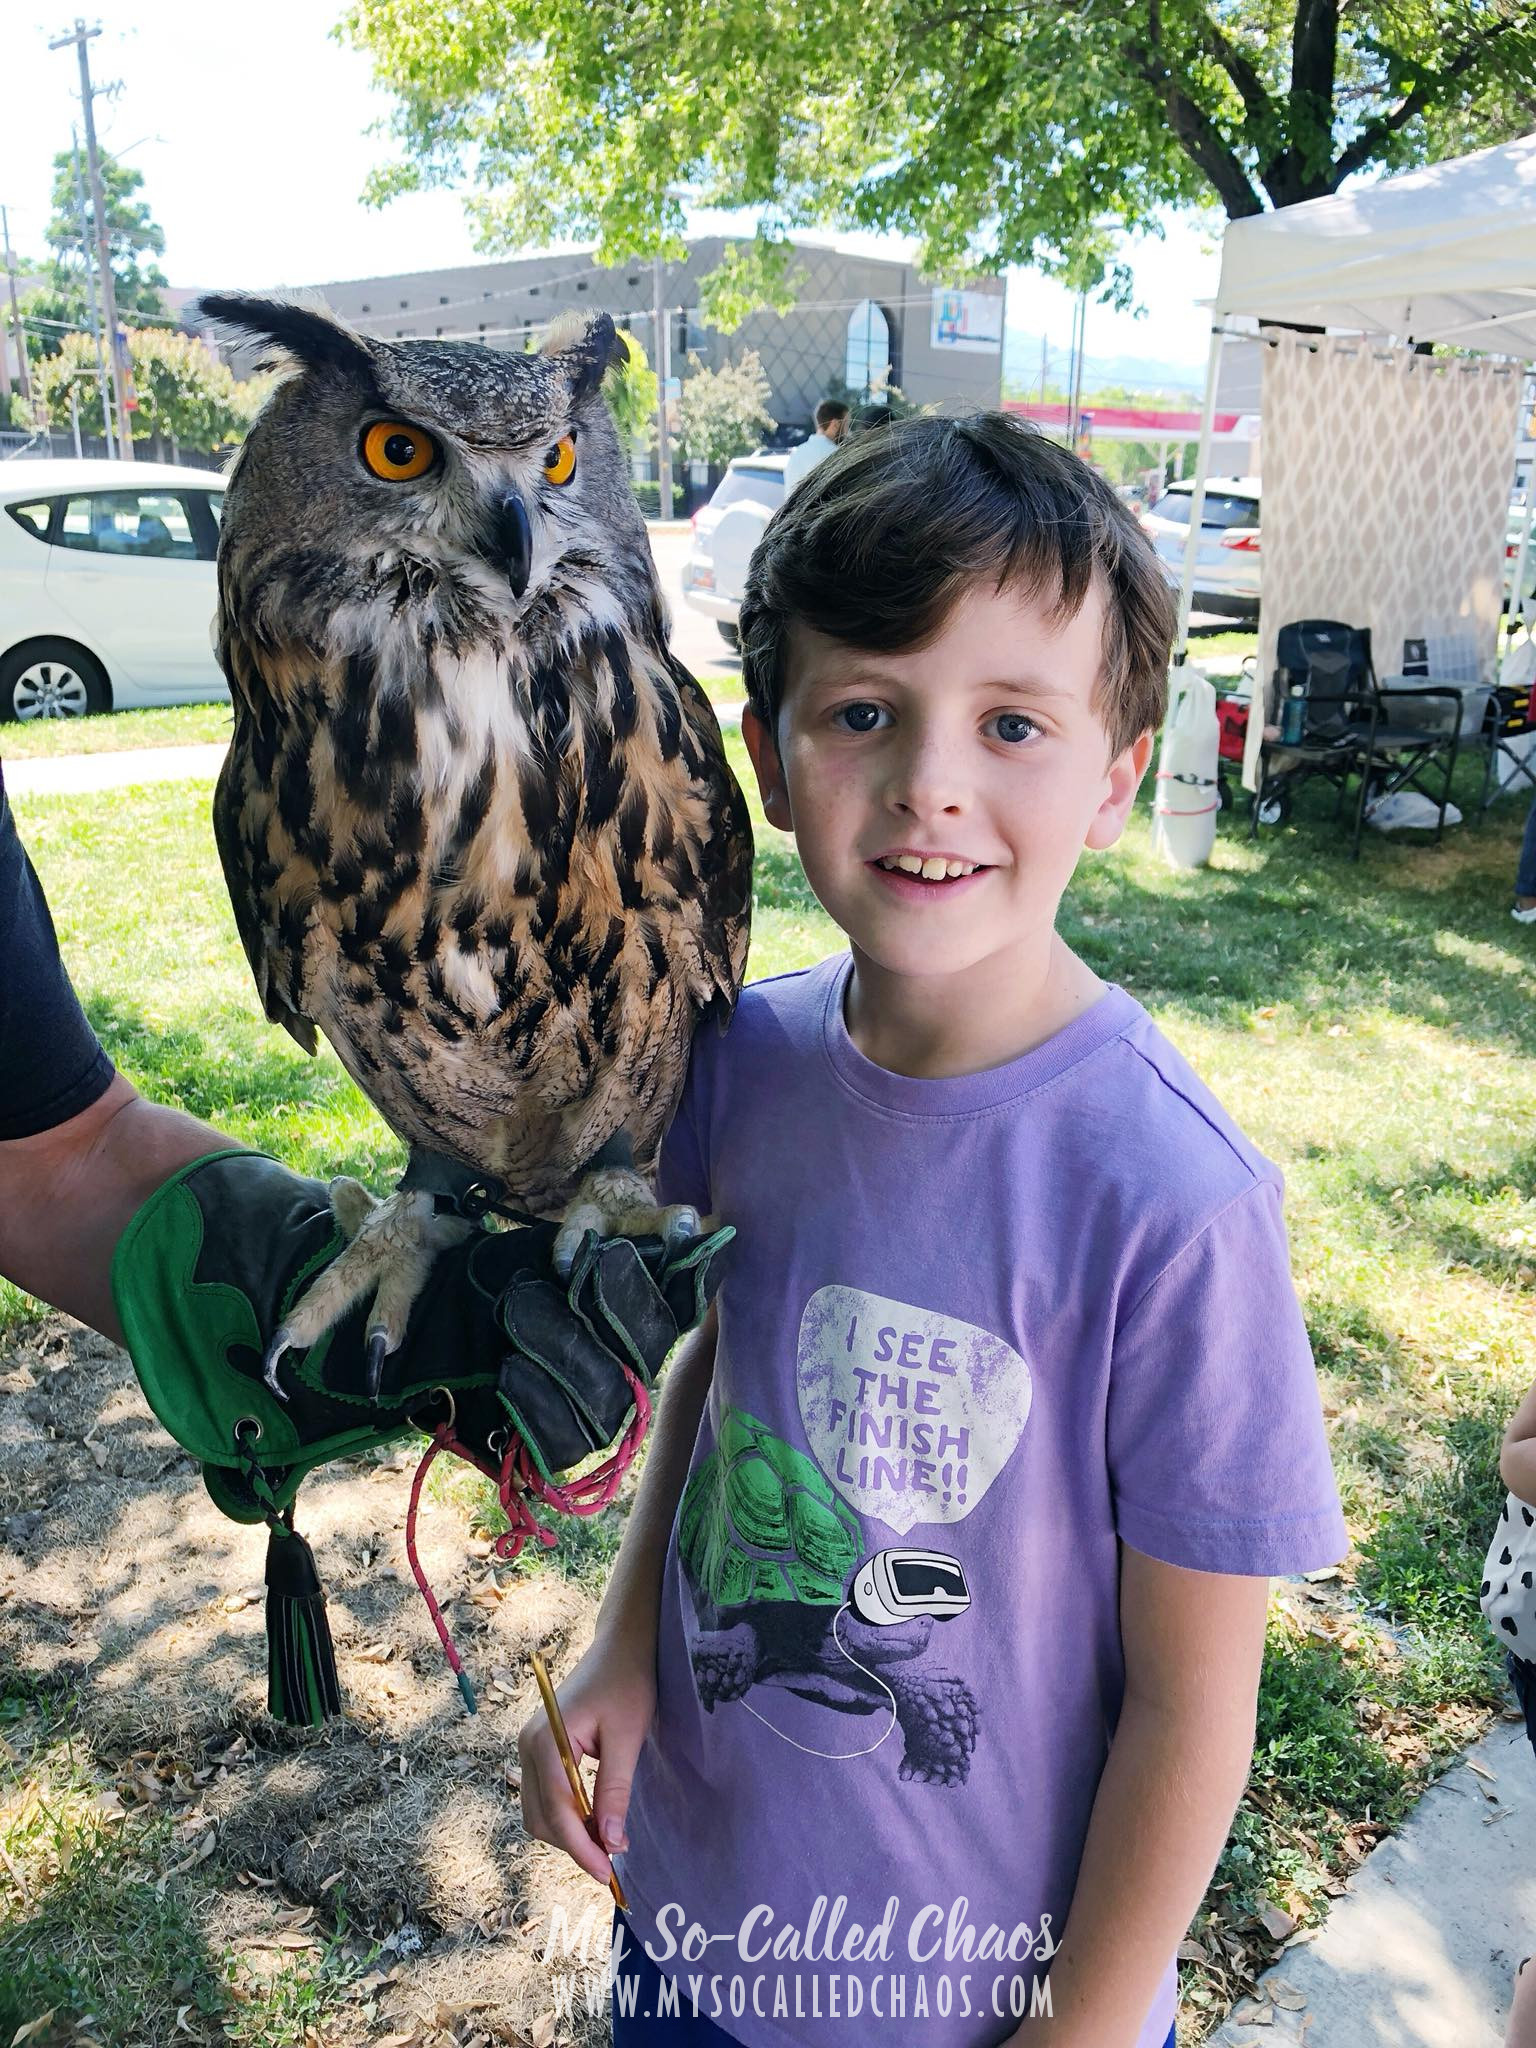 9 year old boy in a purple shirt standing next to an owl.